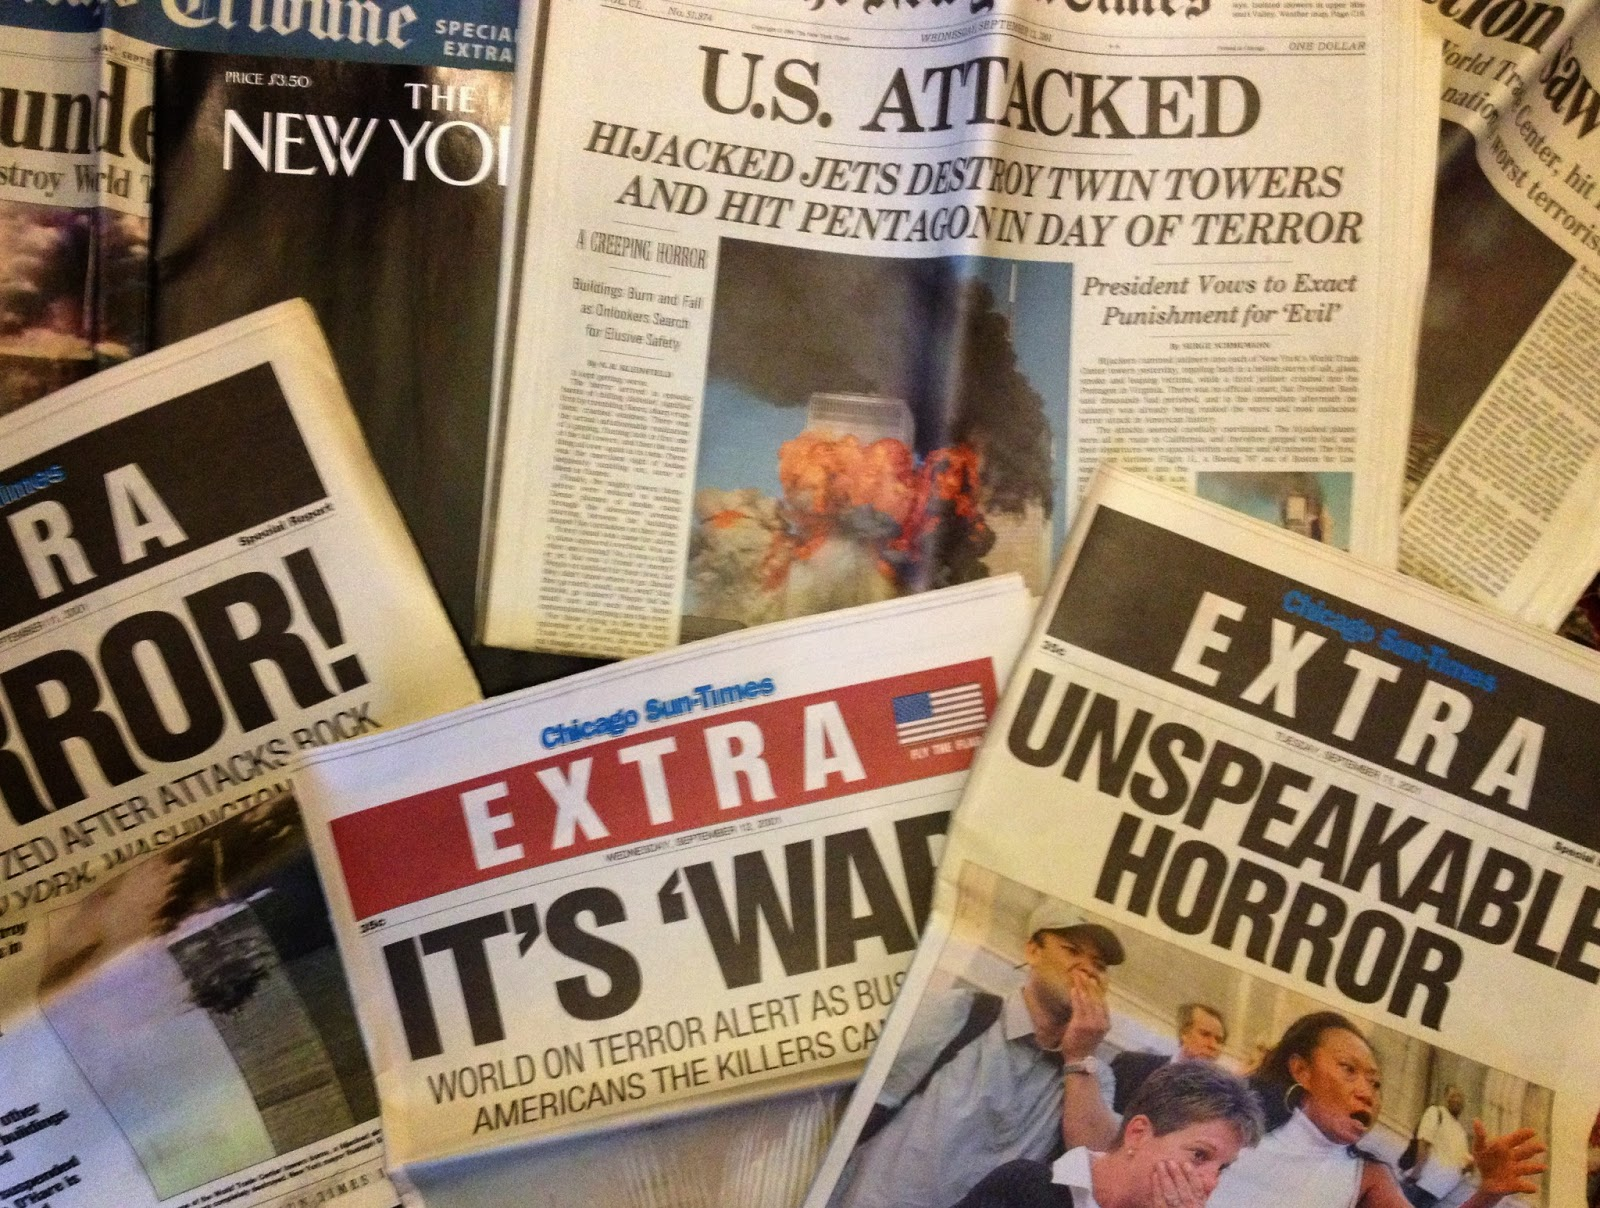 """Newspapers and magazines from the Sept. 11, 2001 attacks, including three """"EXTRA"""" editions of the Sun-Times."""